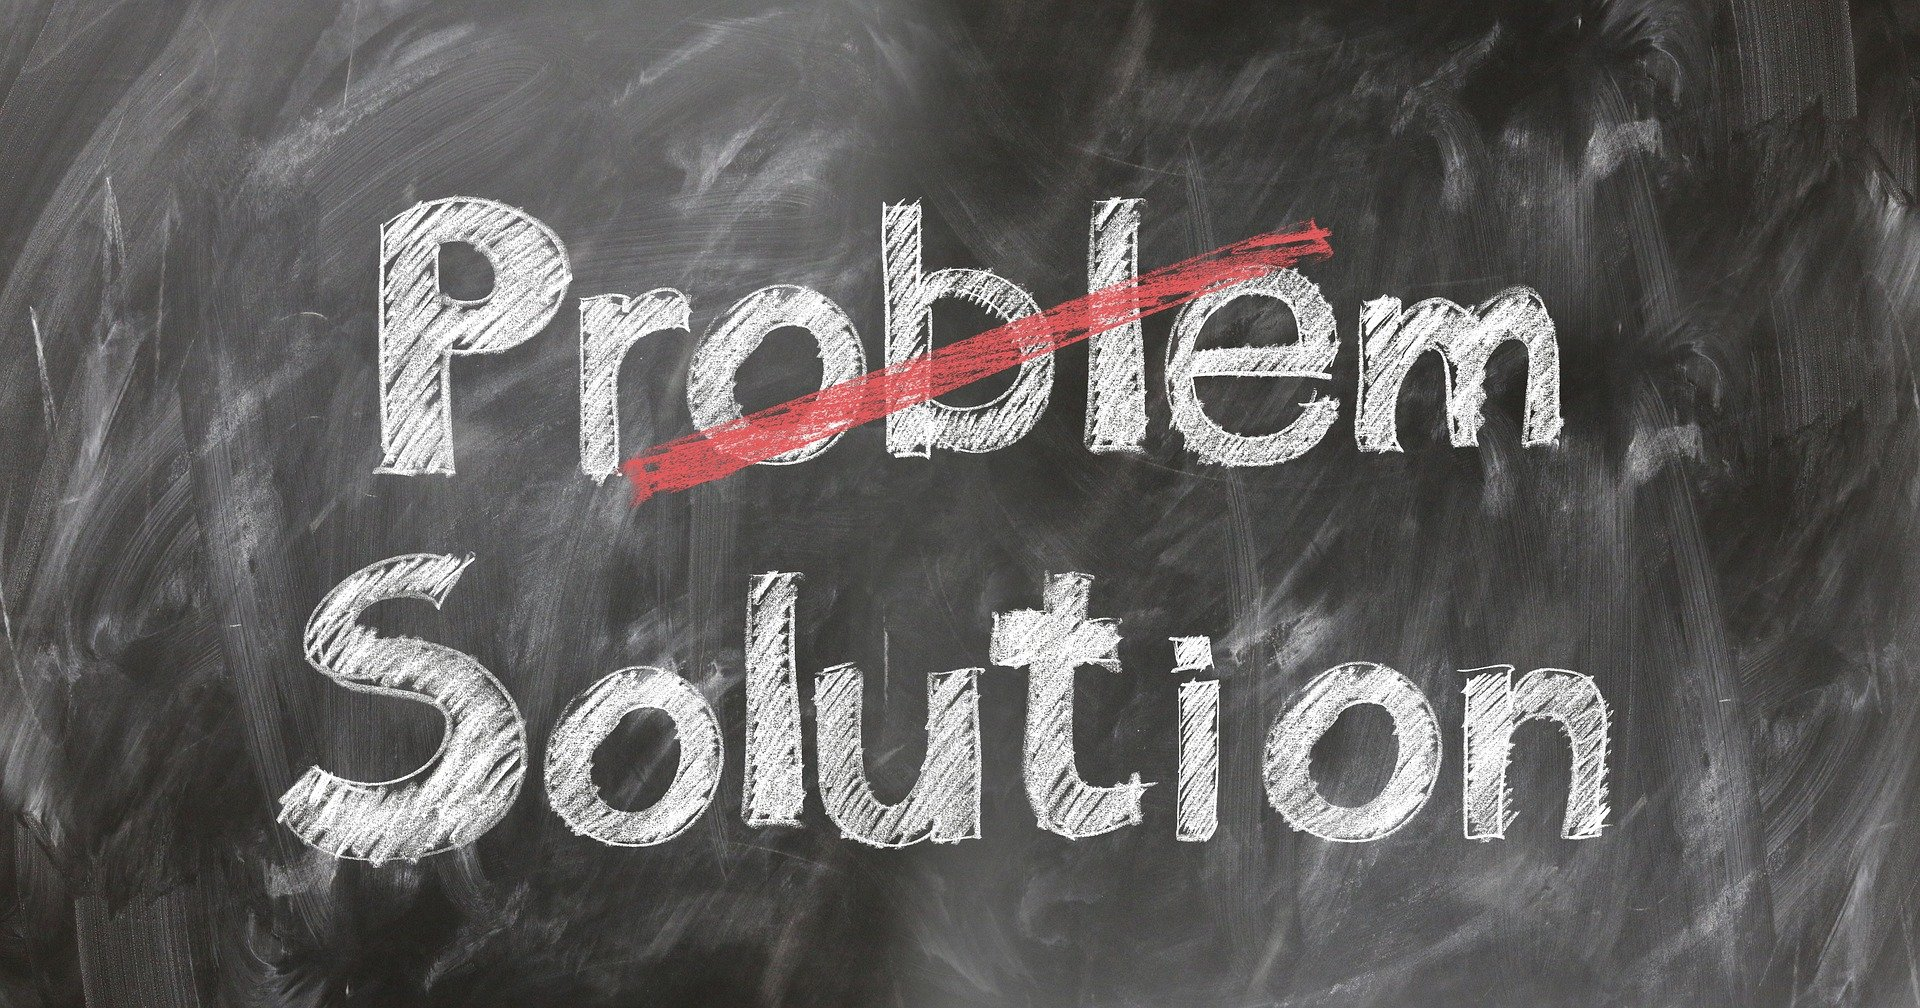 How does your product or service help to solve their problem